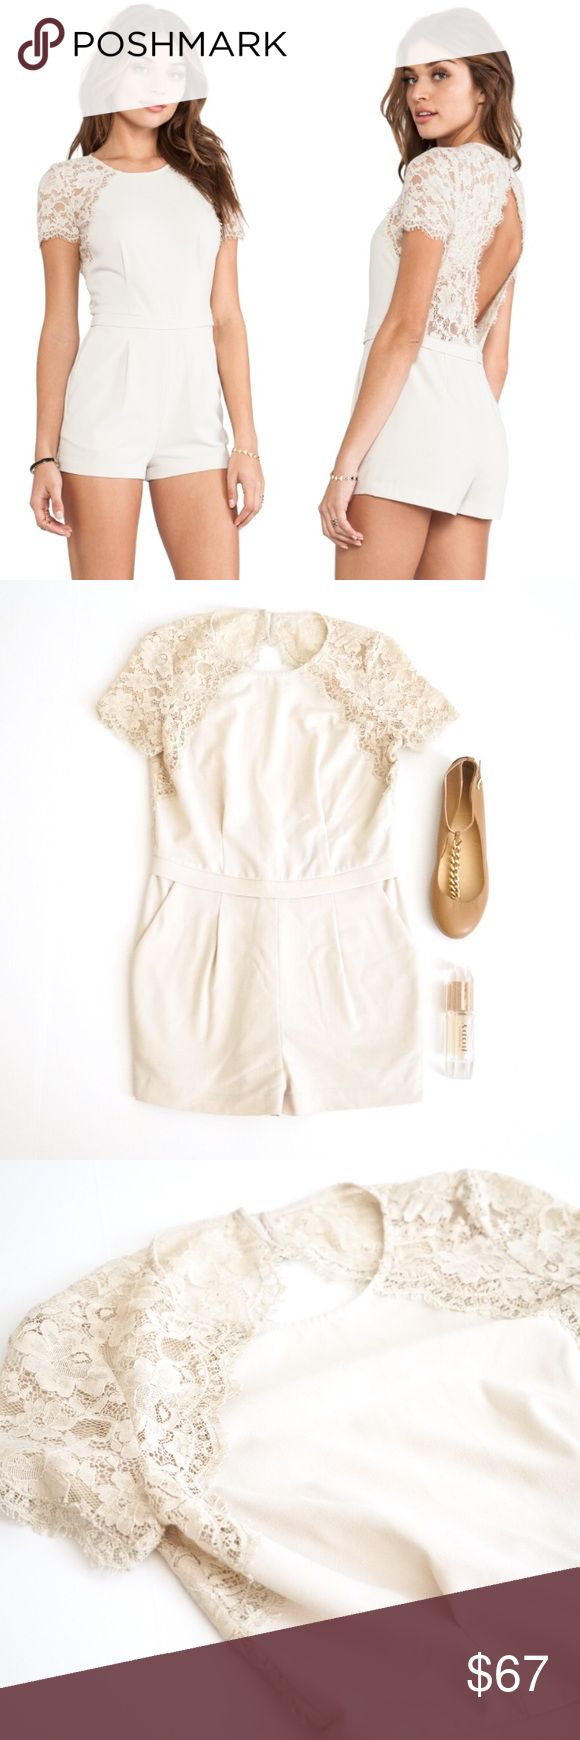 BCBGMaxazria Lace Open Back Romper Gorgeous romper jumpsuit by BCBG. Size 0. Great condition. Super classic style with fitted pleats, pockets, short sleeves and an open keyhole back, lace trim. Retailed for $228. Pale neutral color that will go with everything you wear! Worn once and in good condition. BCBGMaxAzria Pants Jumpsuits & Rompers